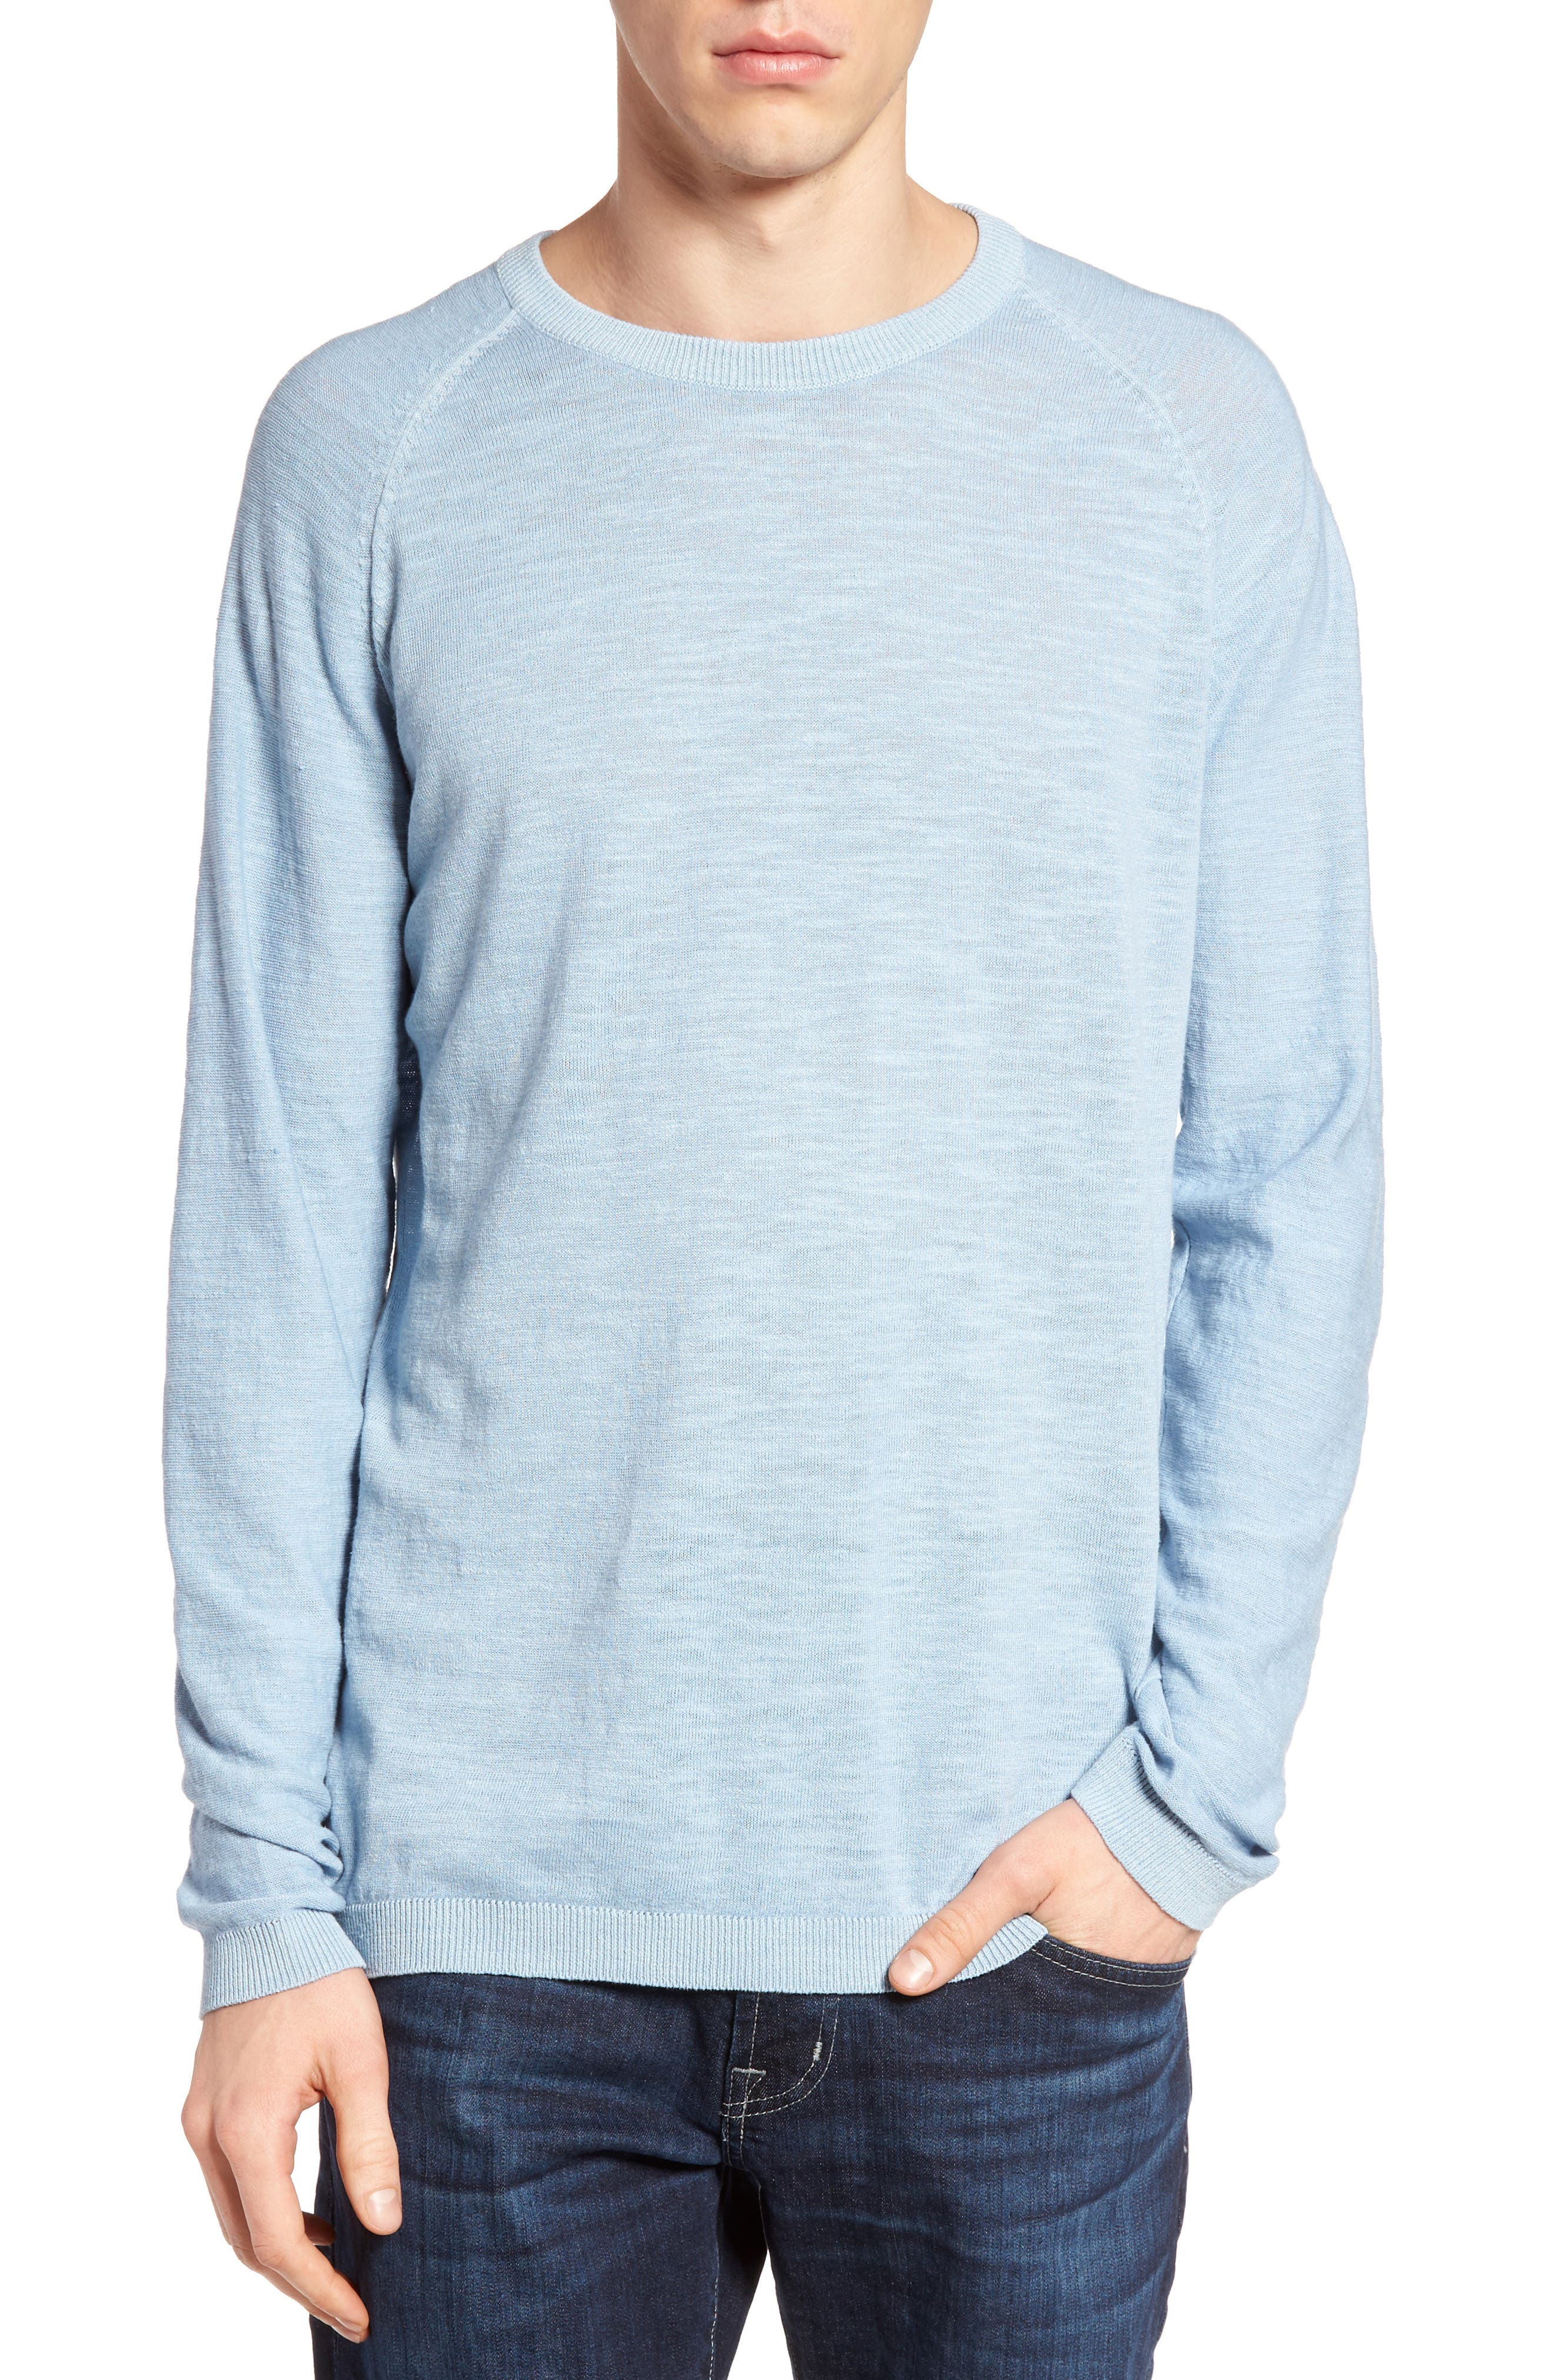 Main Image - French Connection Arambol Cotton & Linen Sweater